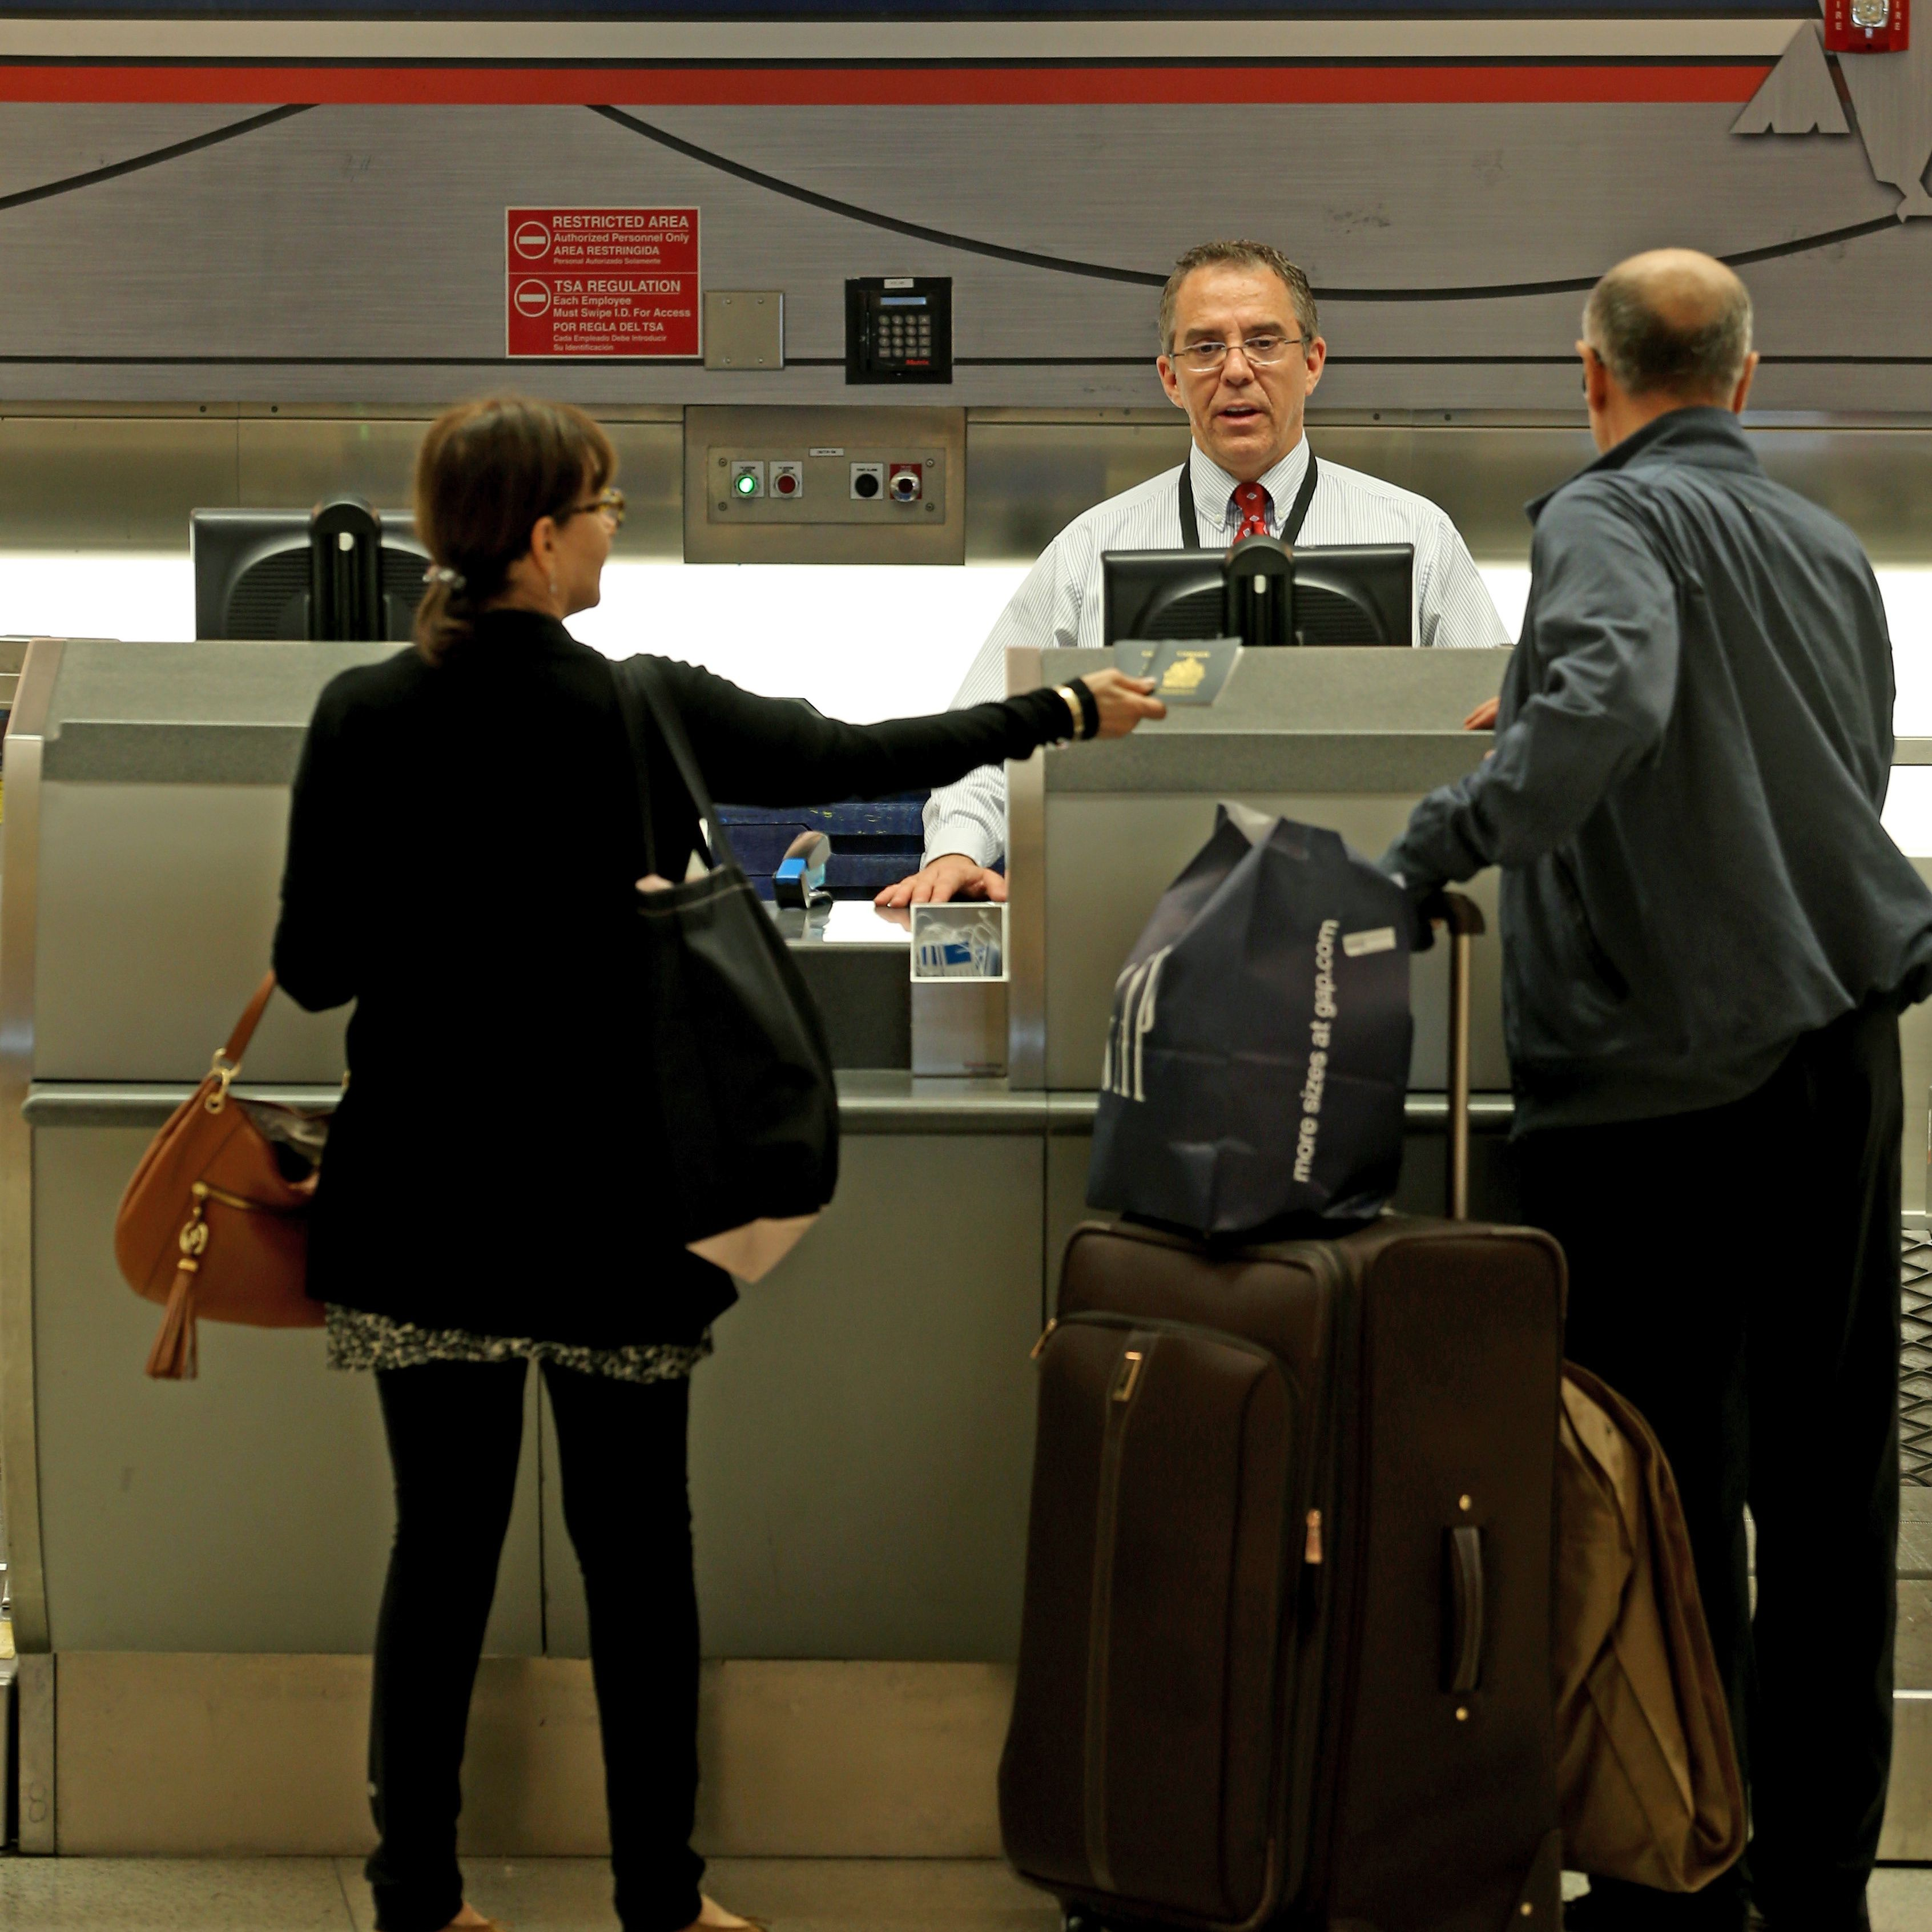 After a missed flight, report to the airline counter as quickly as possible.